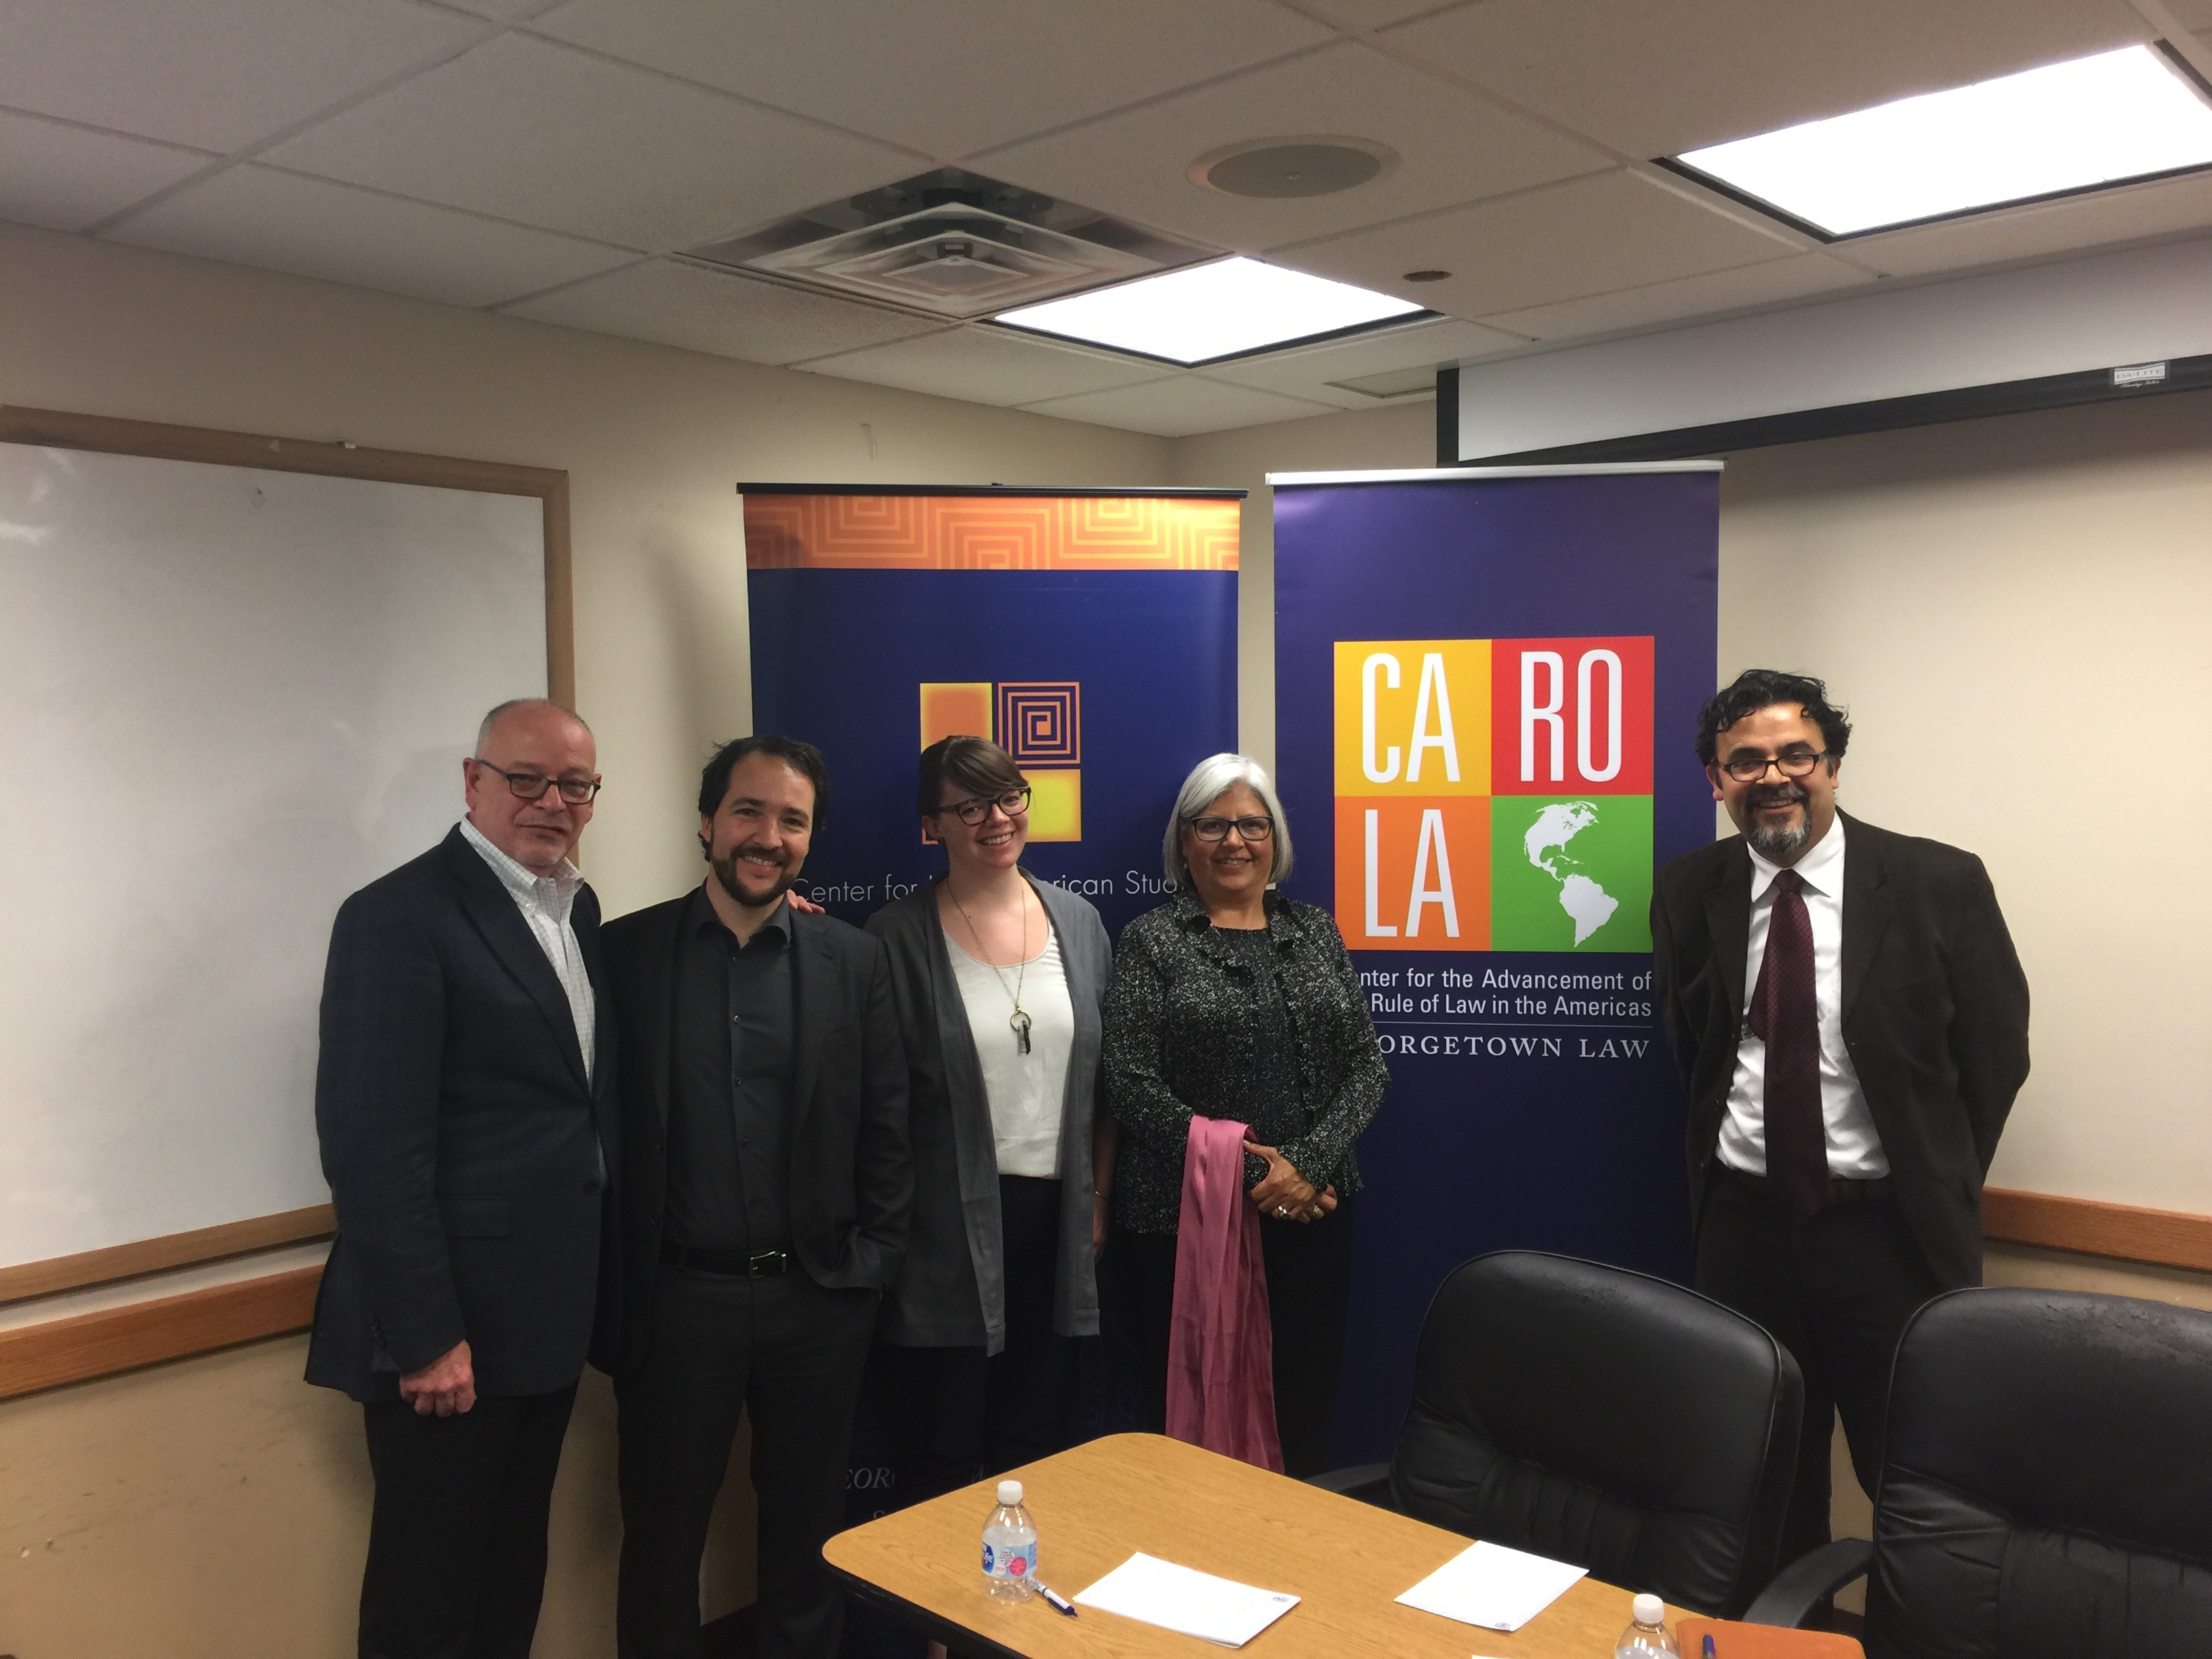 Professor Santos with authors and discussants at book talk